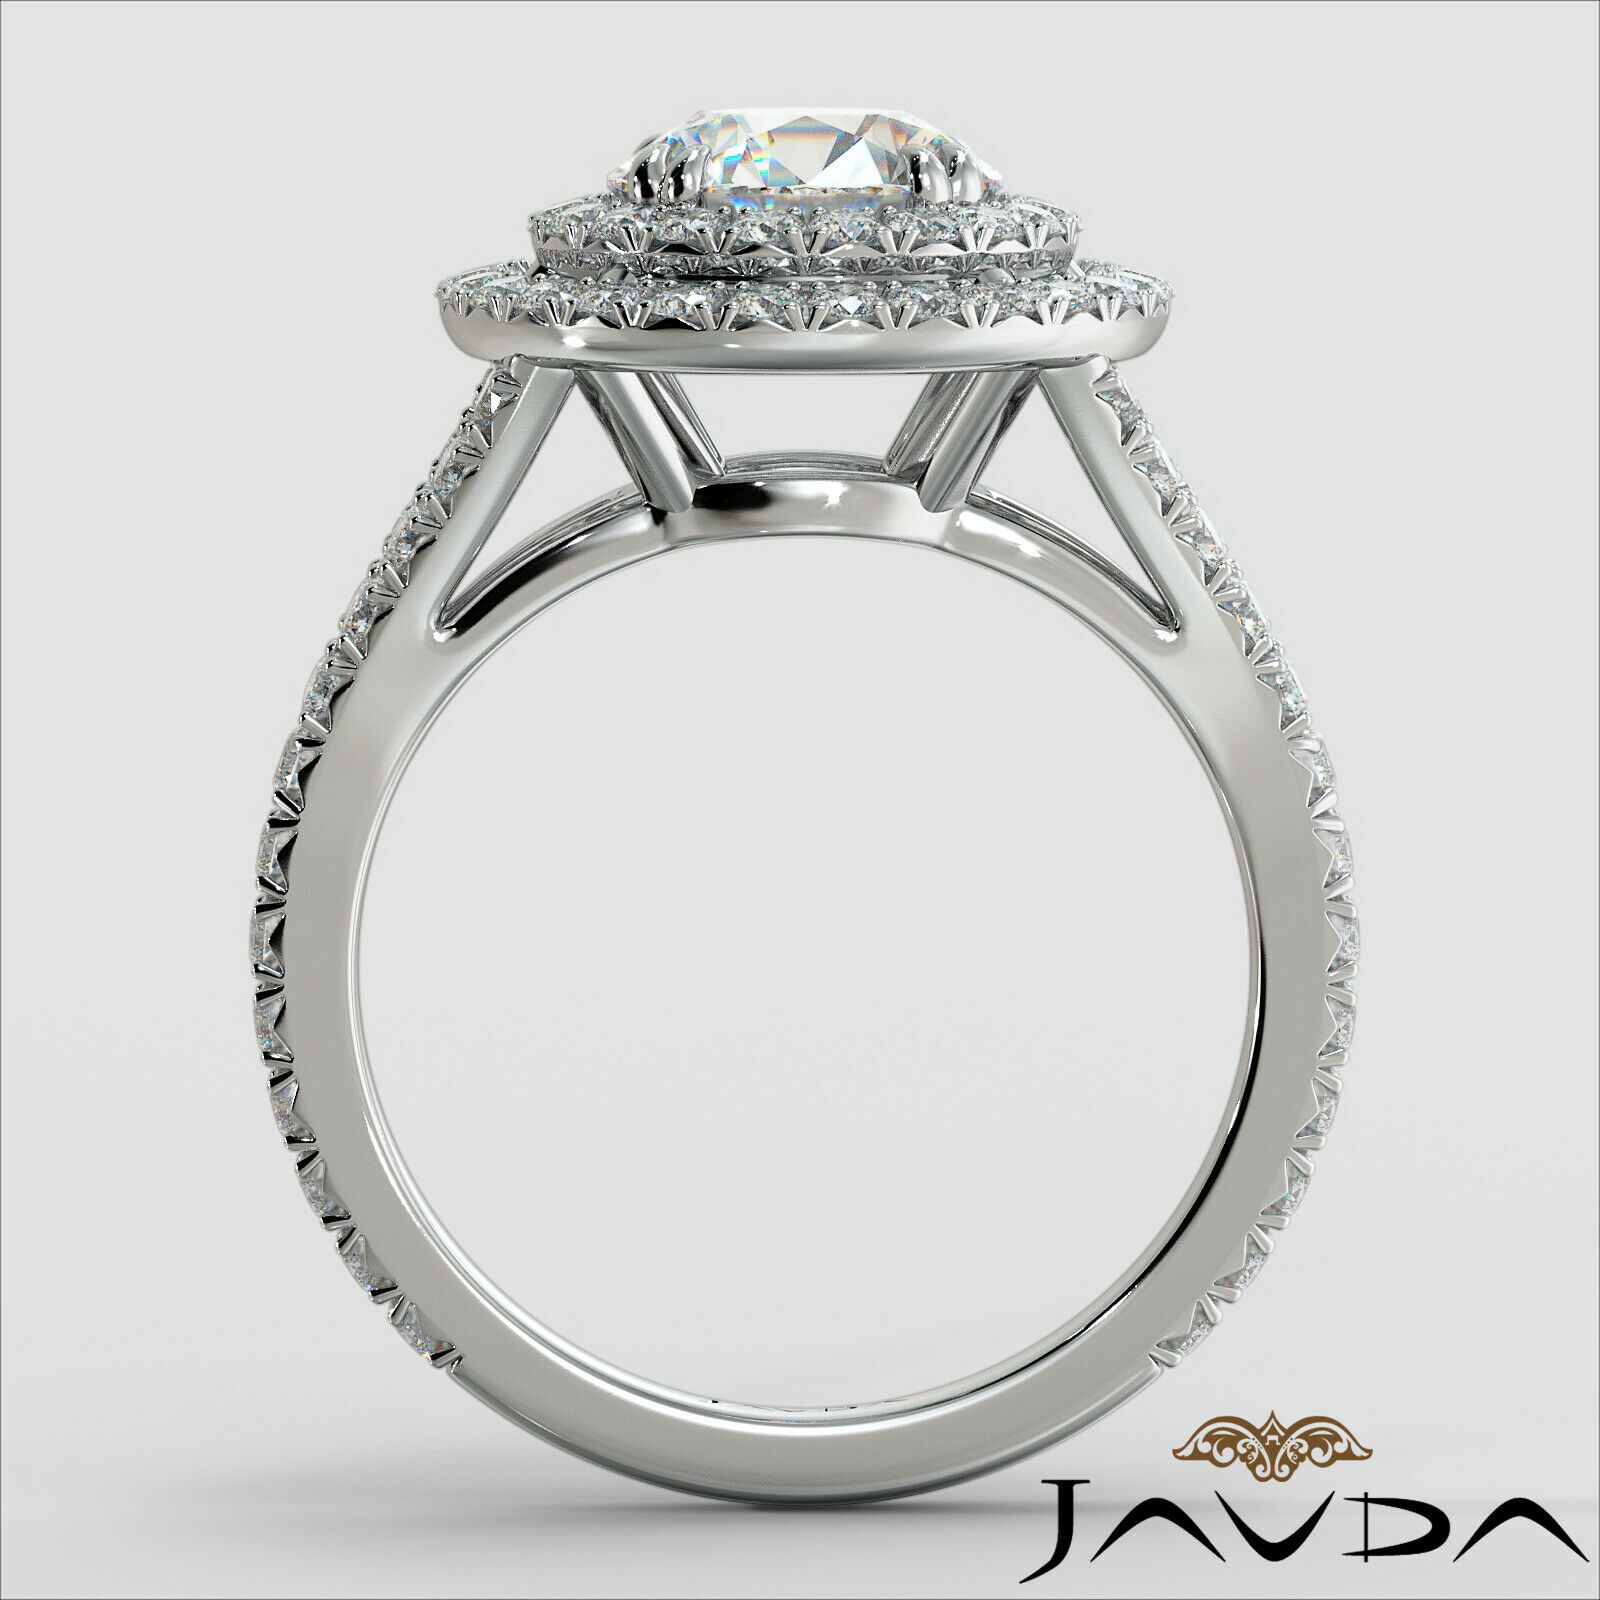 2.05ct French Pave Gala Halo Round Diamond Engagement Ring GIA F-VVS1 White Gold 3